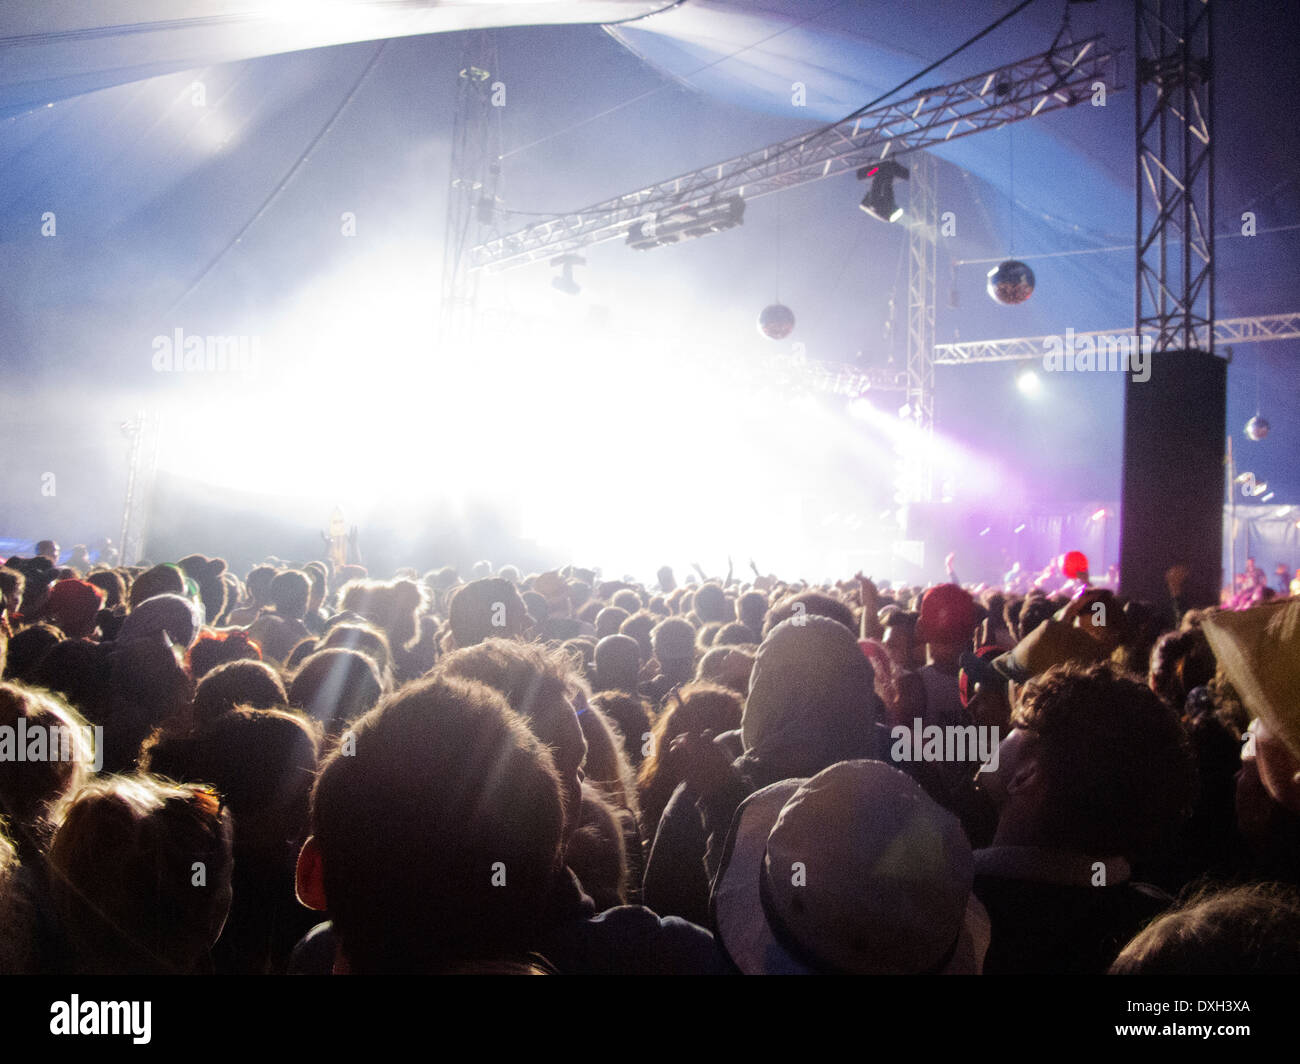 Fans facing illuminated stage at music festival - Stock Image